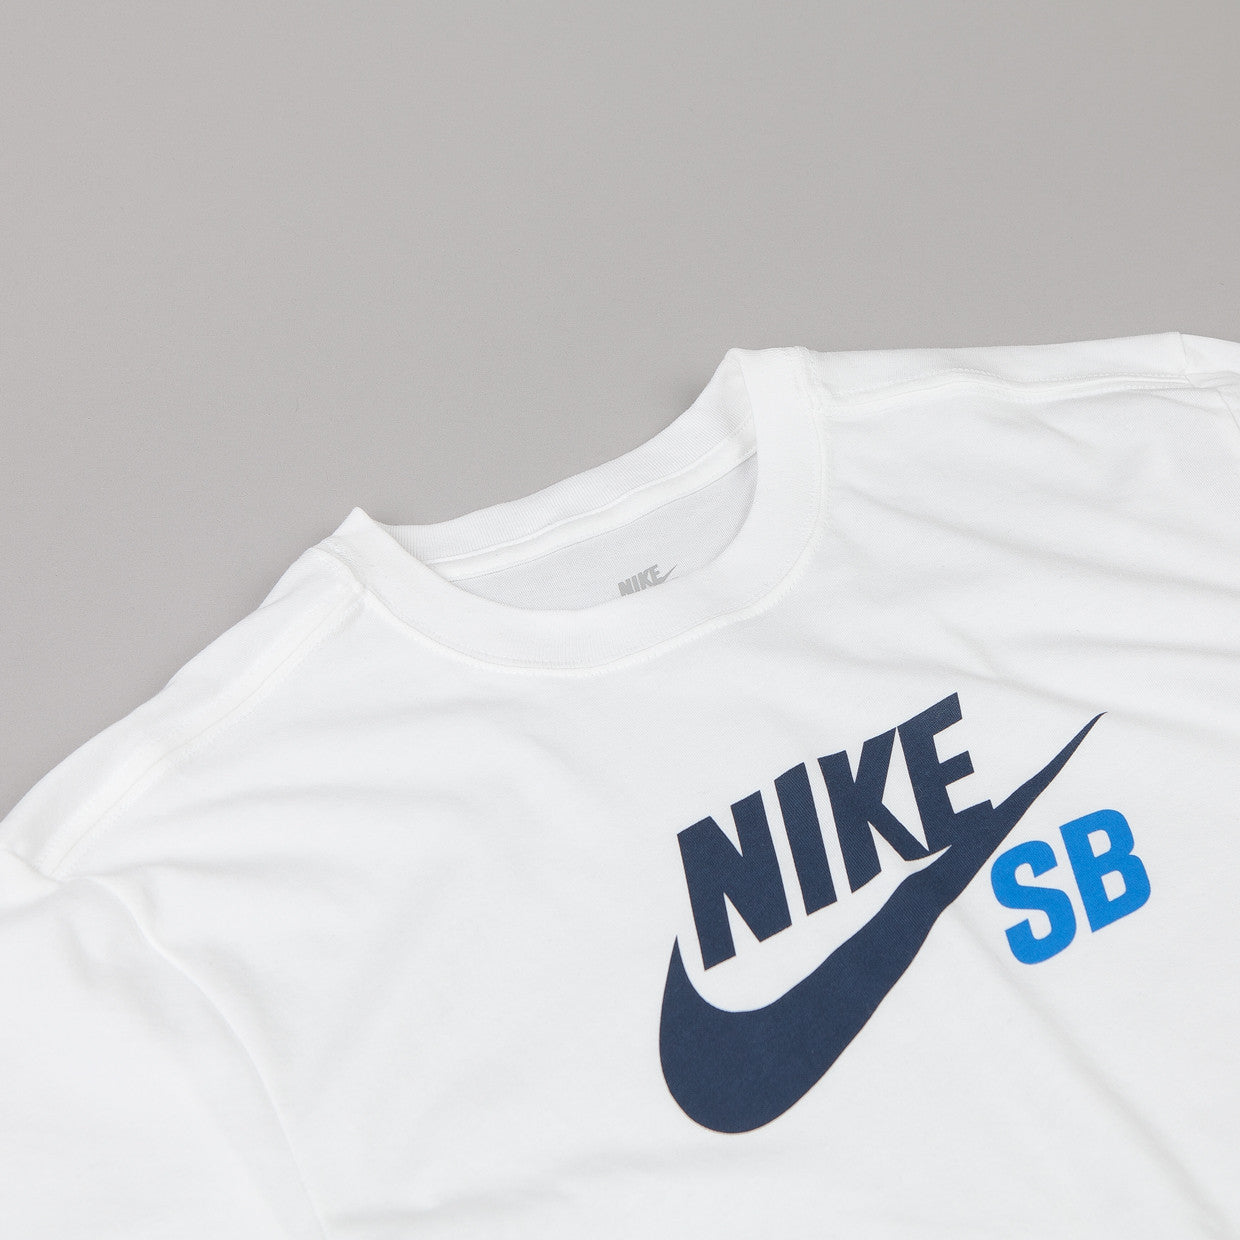 Nike Sb Dri-fit Icon T-shirt White / Obsidian - Photo Blue